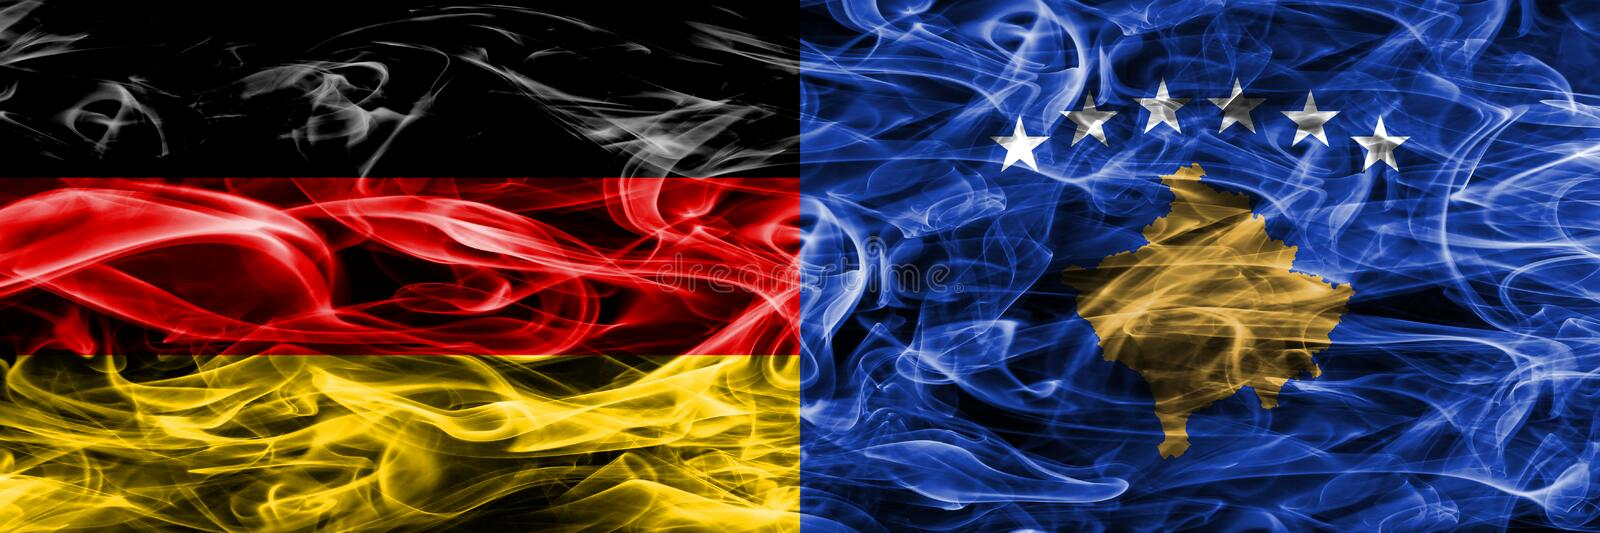 Germany vs Kosovo smoke flags placed side by side. German and Ko stock images